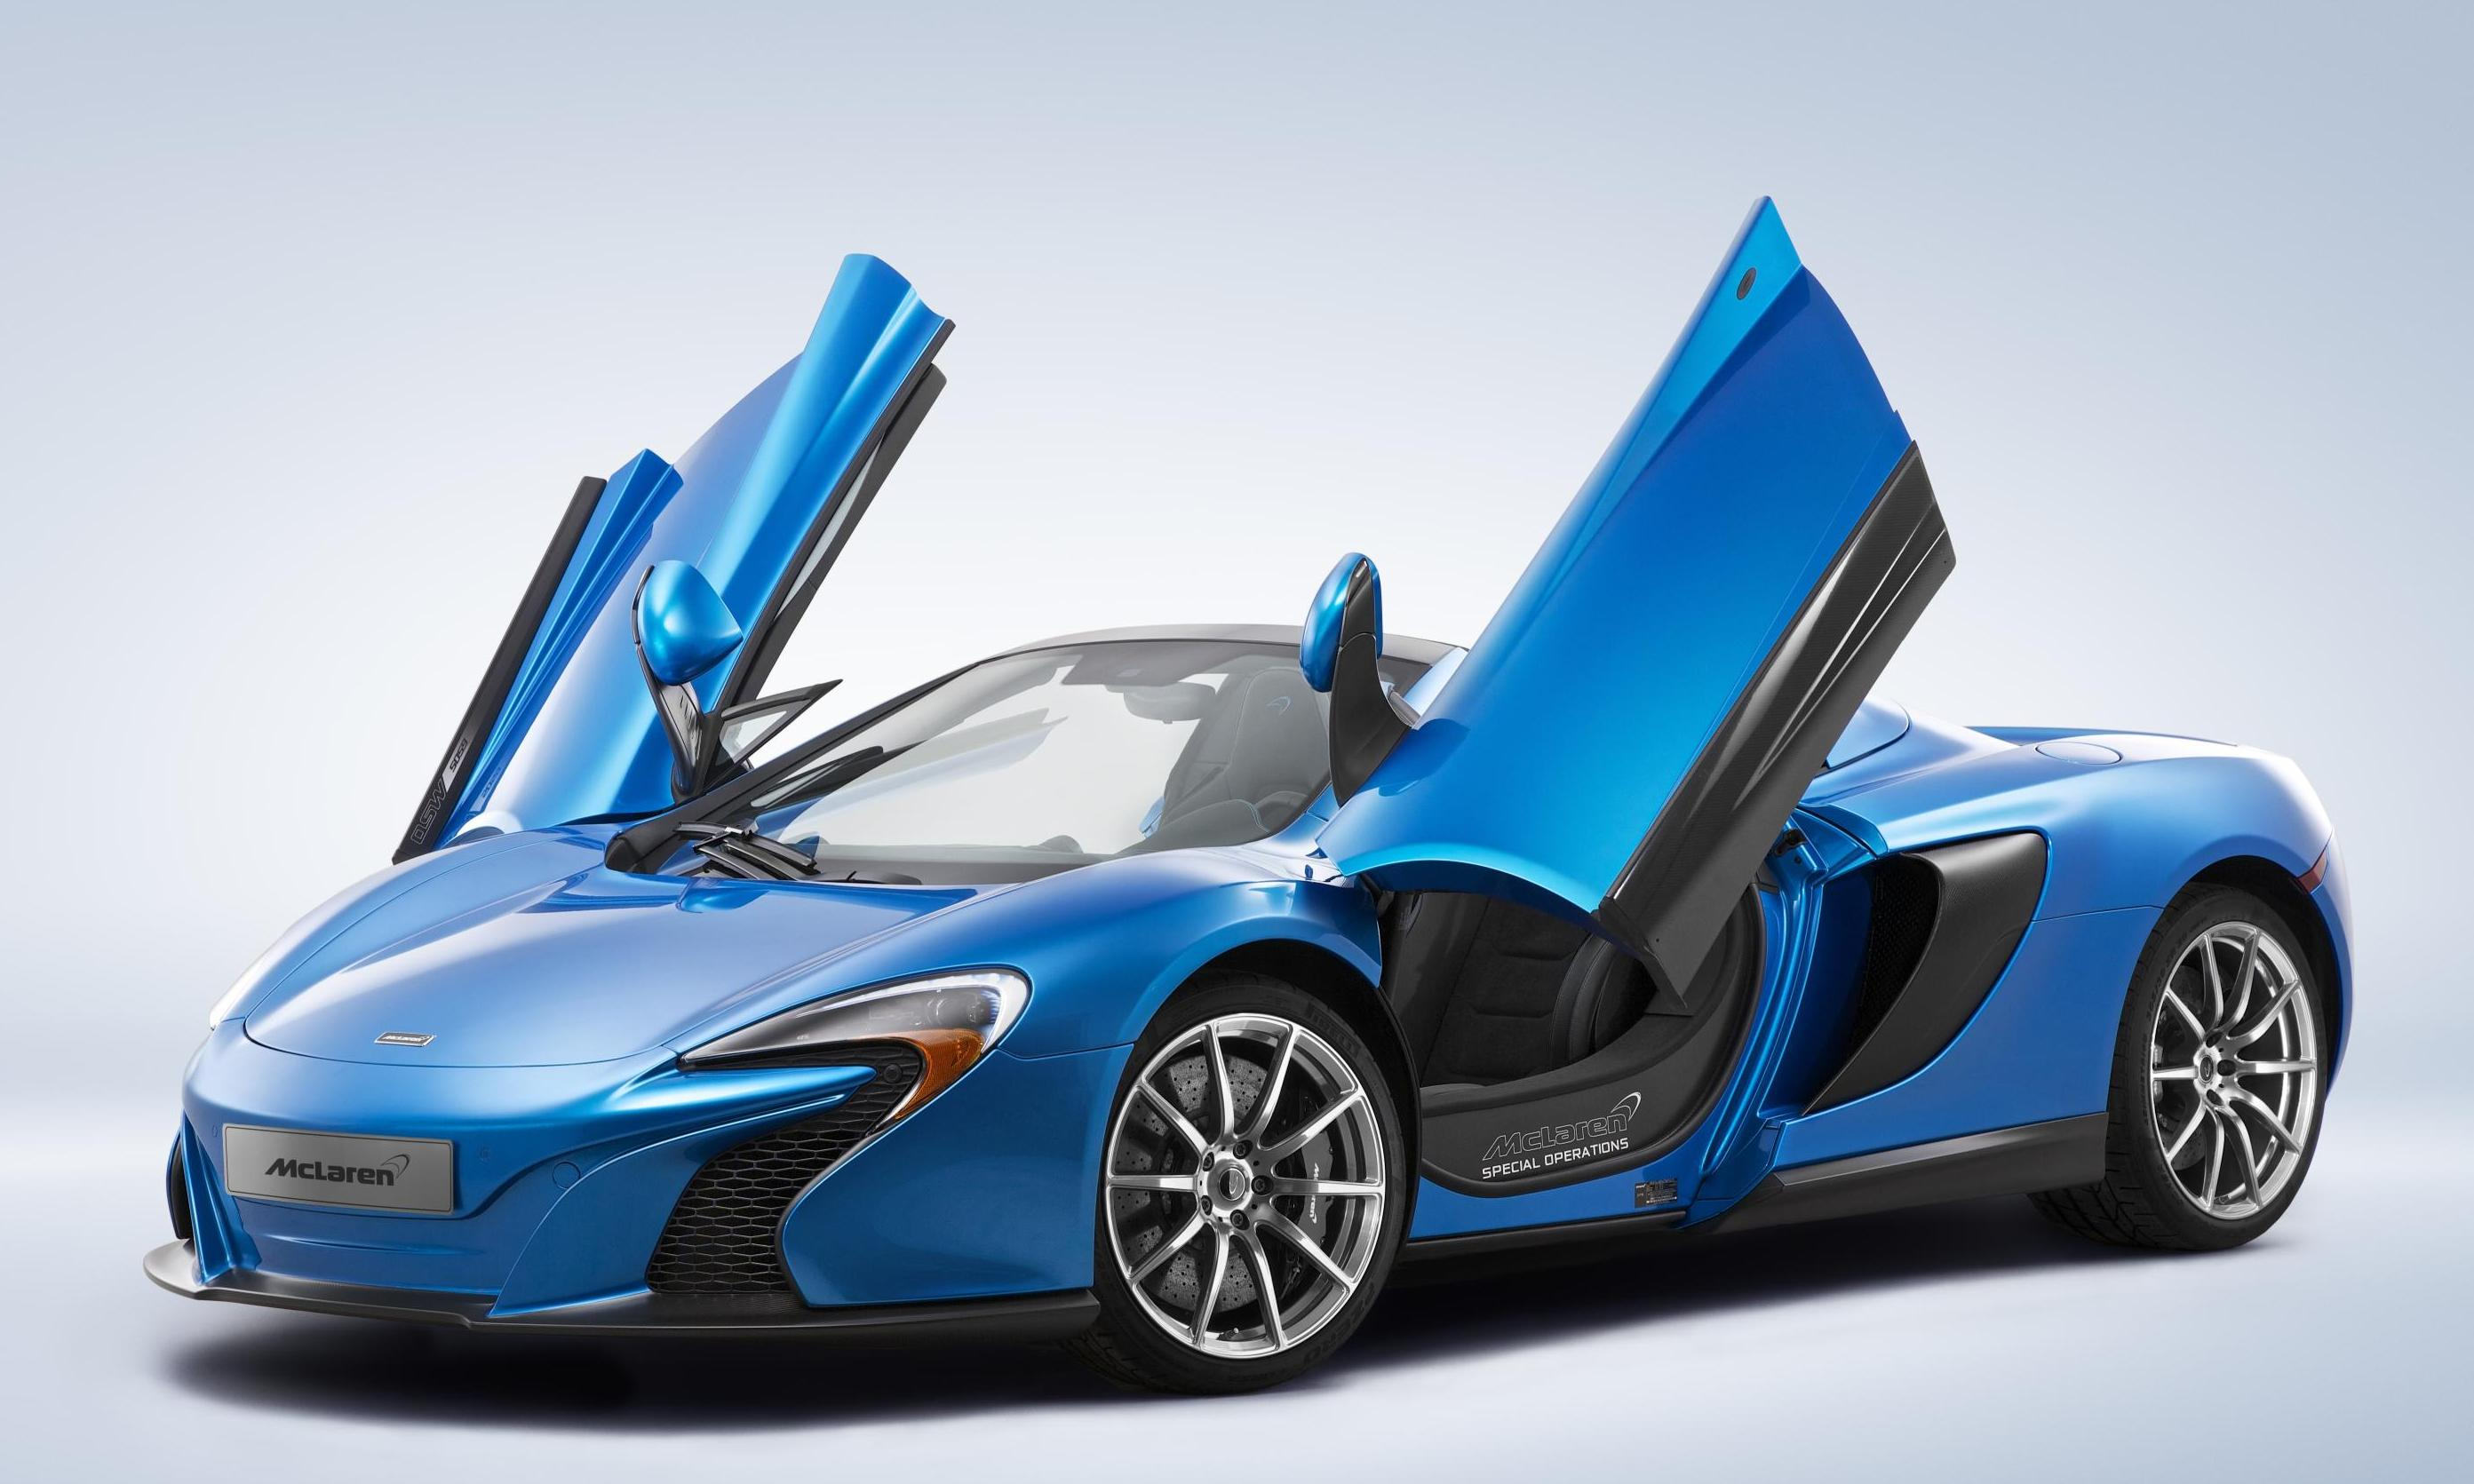 Concours D Elegance >> McLaren Special Operations Confirms Pebble Beach Debut of MSO 650S Spider and MSO P1